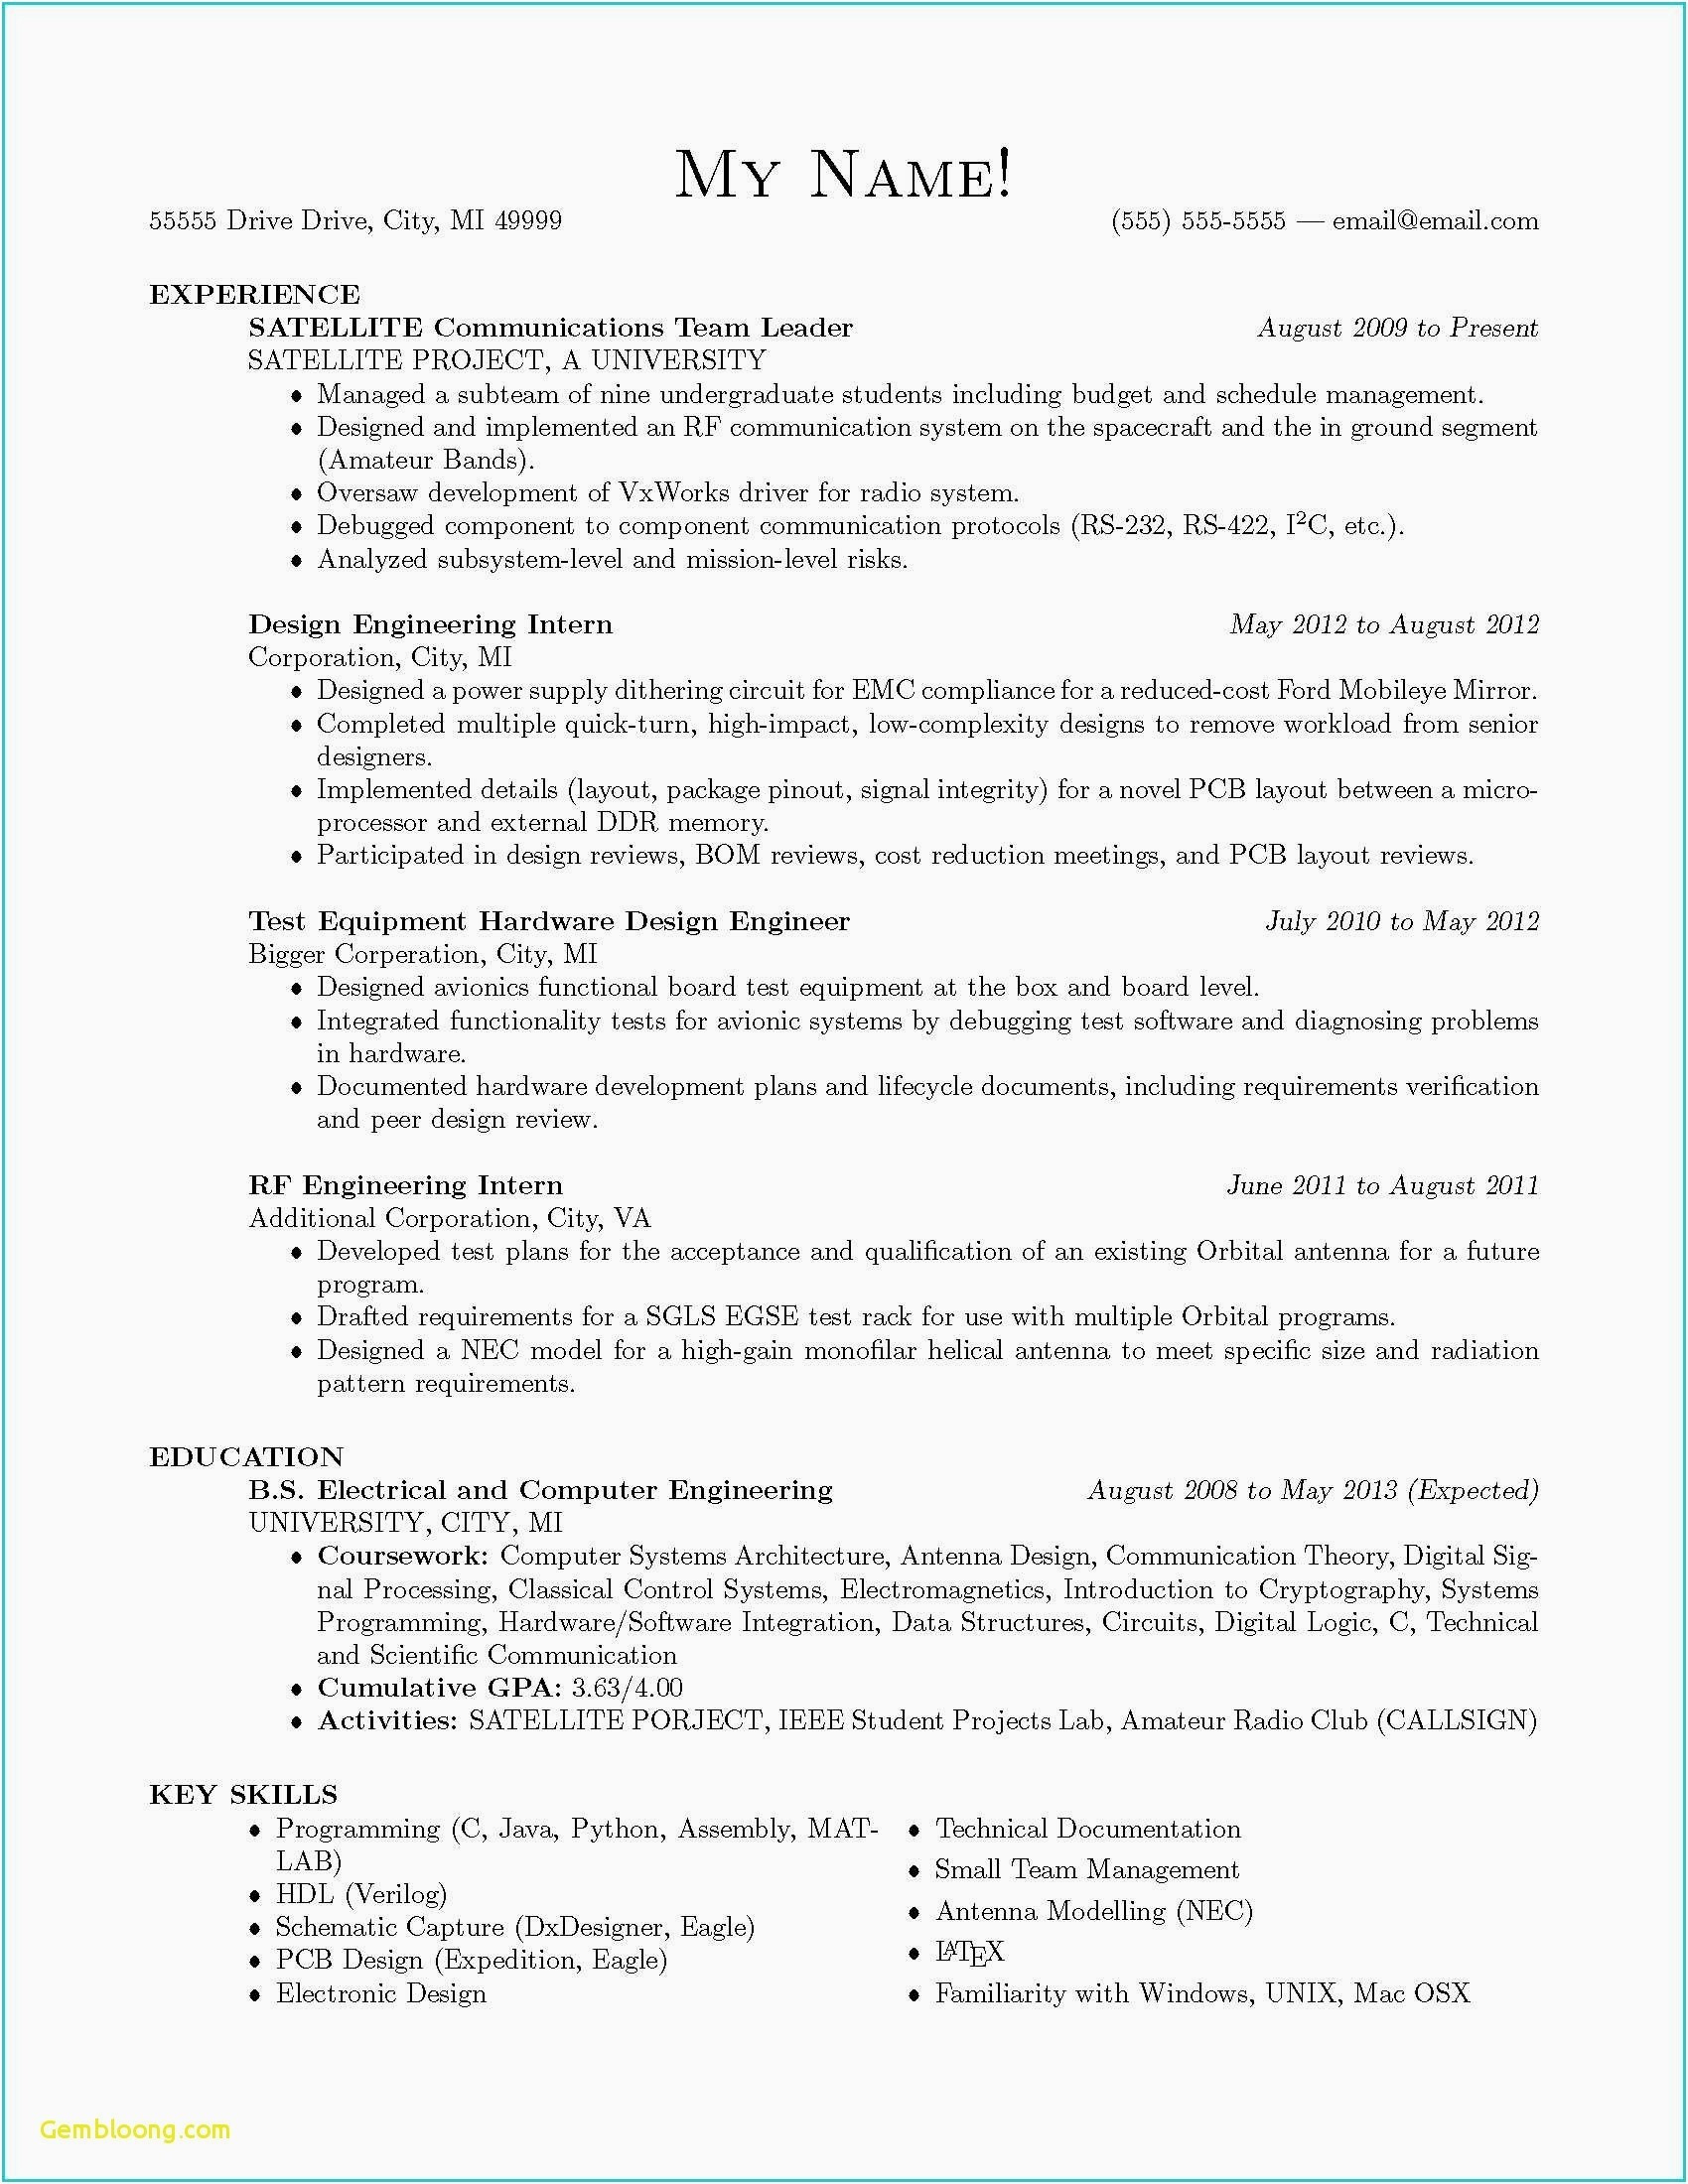 Electrician Resume Examples - Puter Engineering Career Resume Elegant Apprentice Electrician